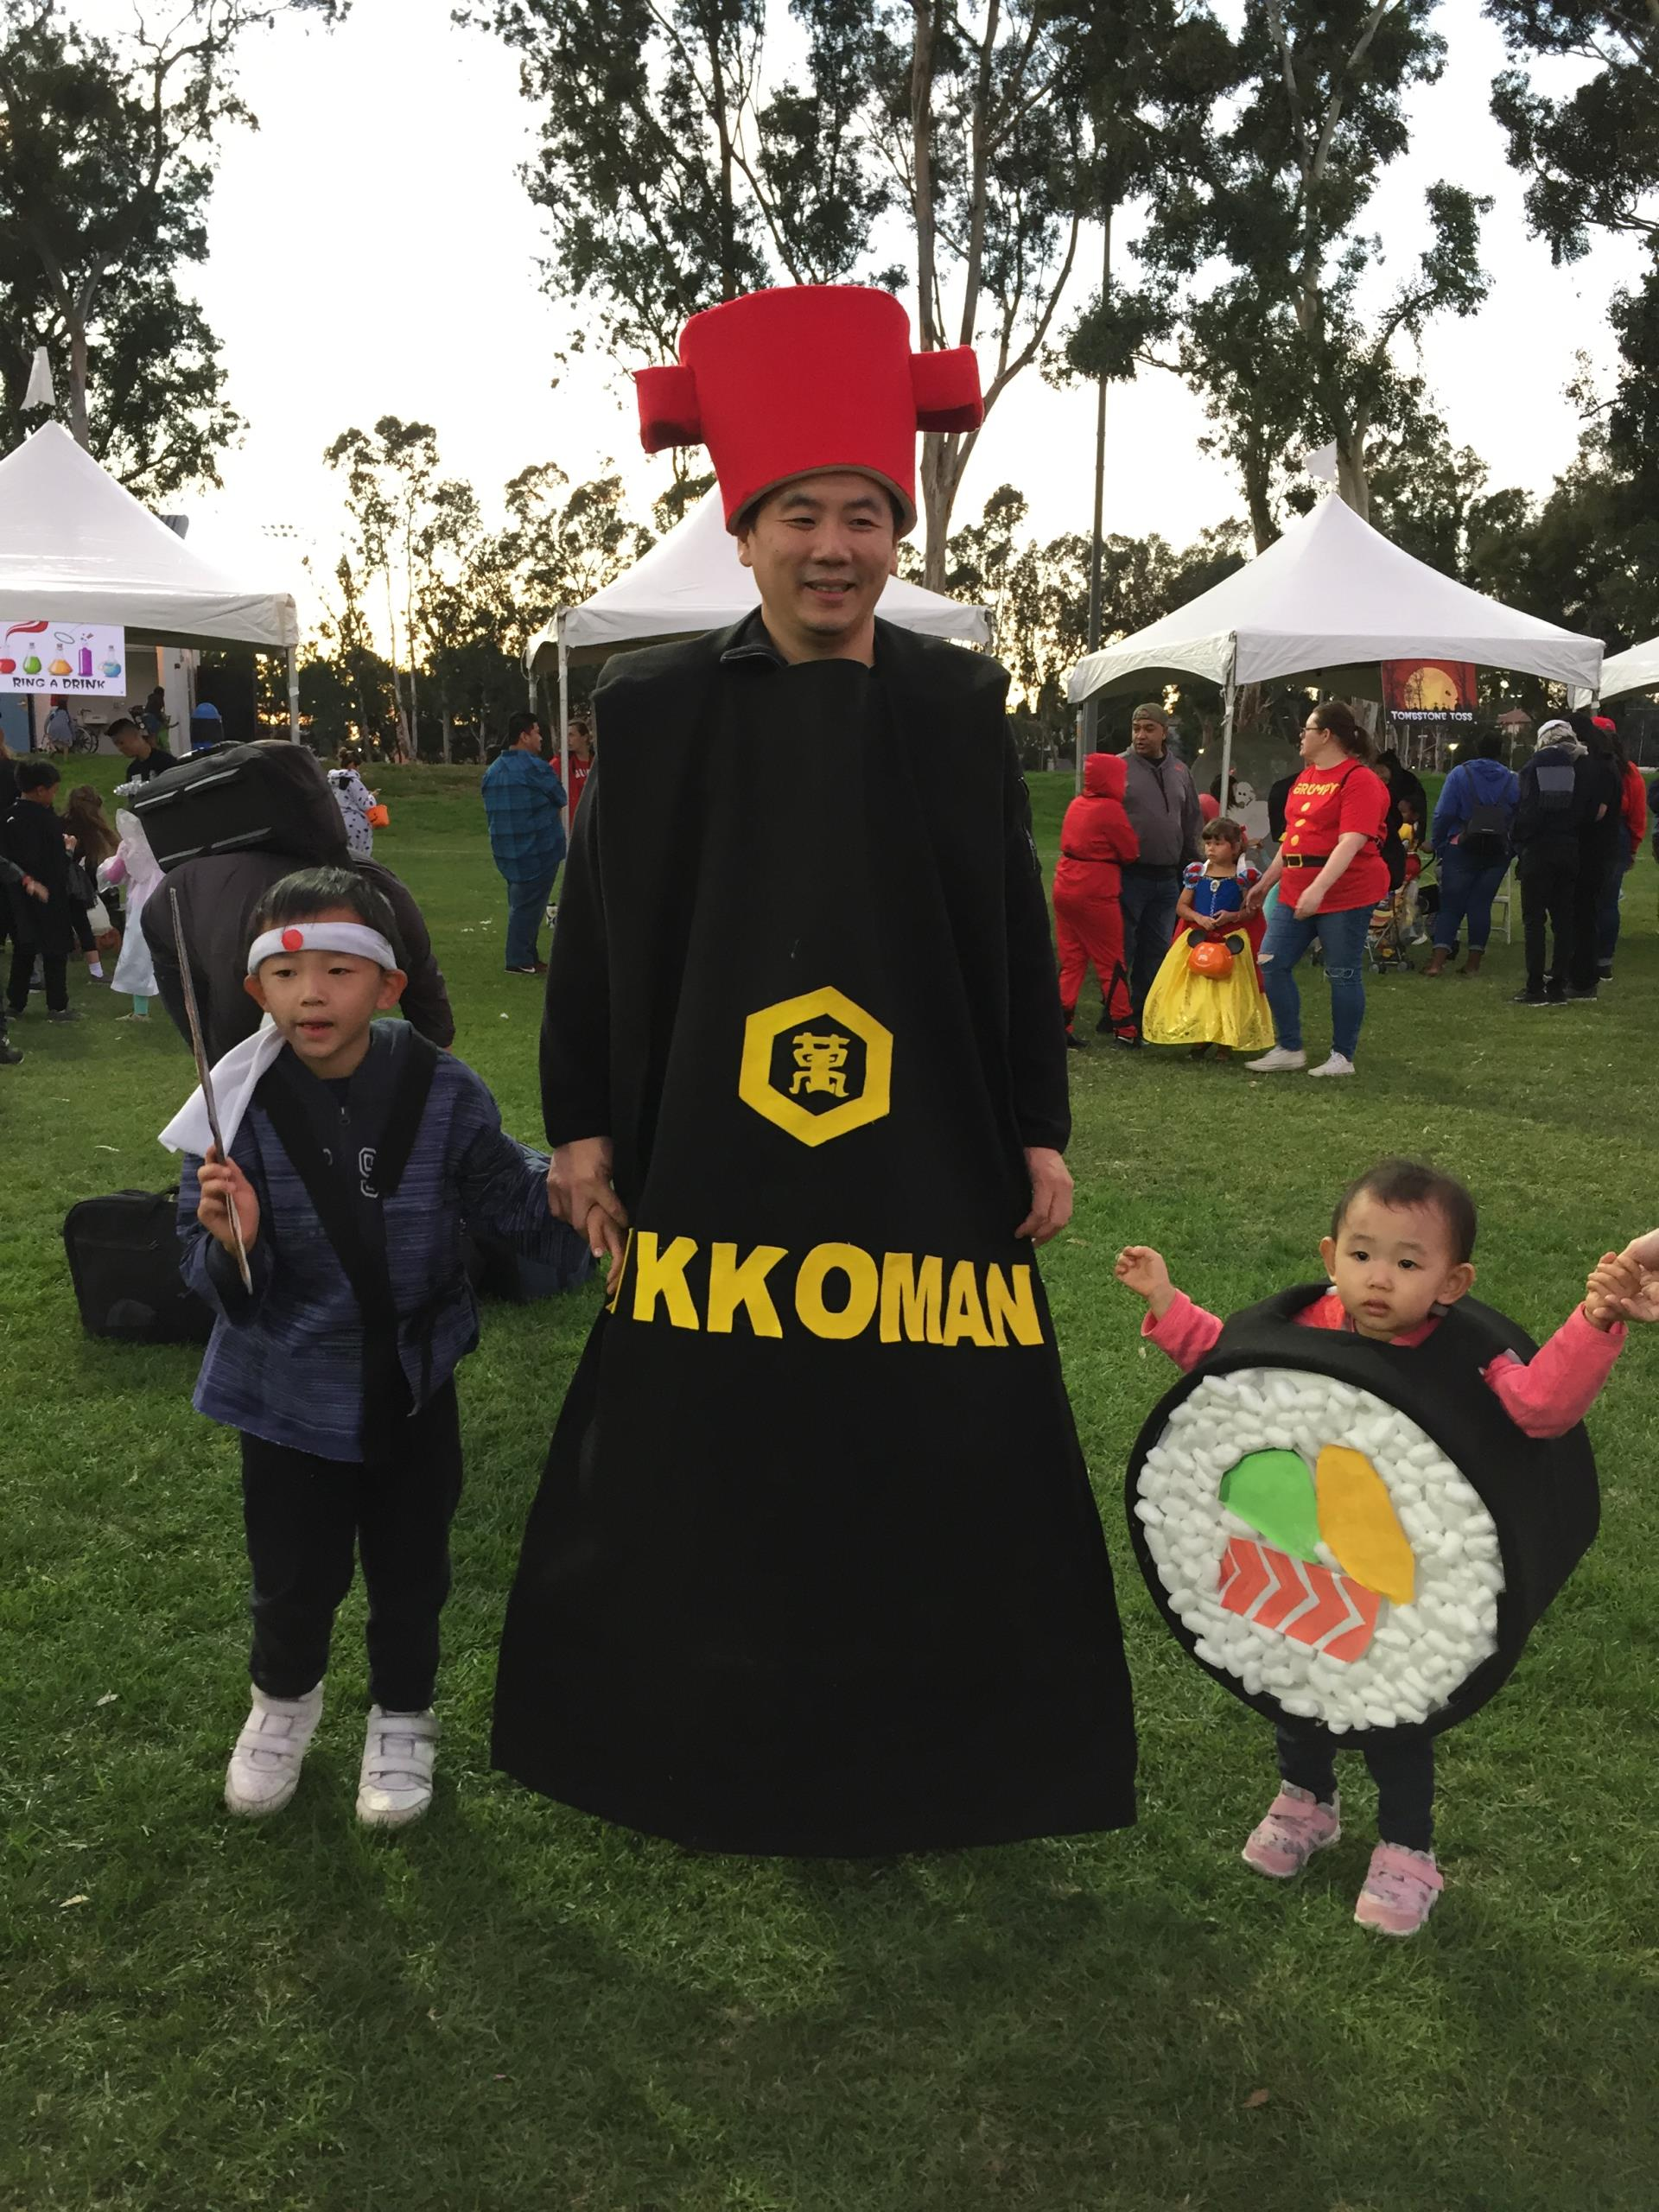 man and children in halloween costumes